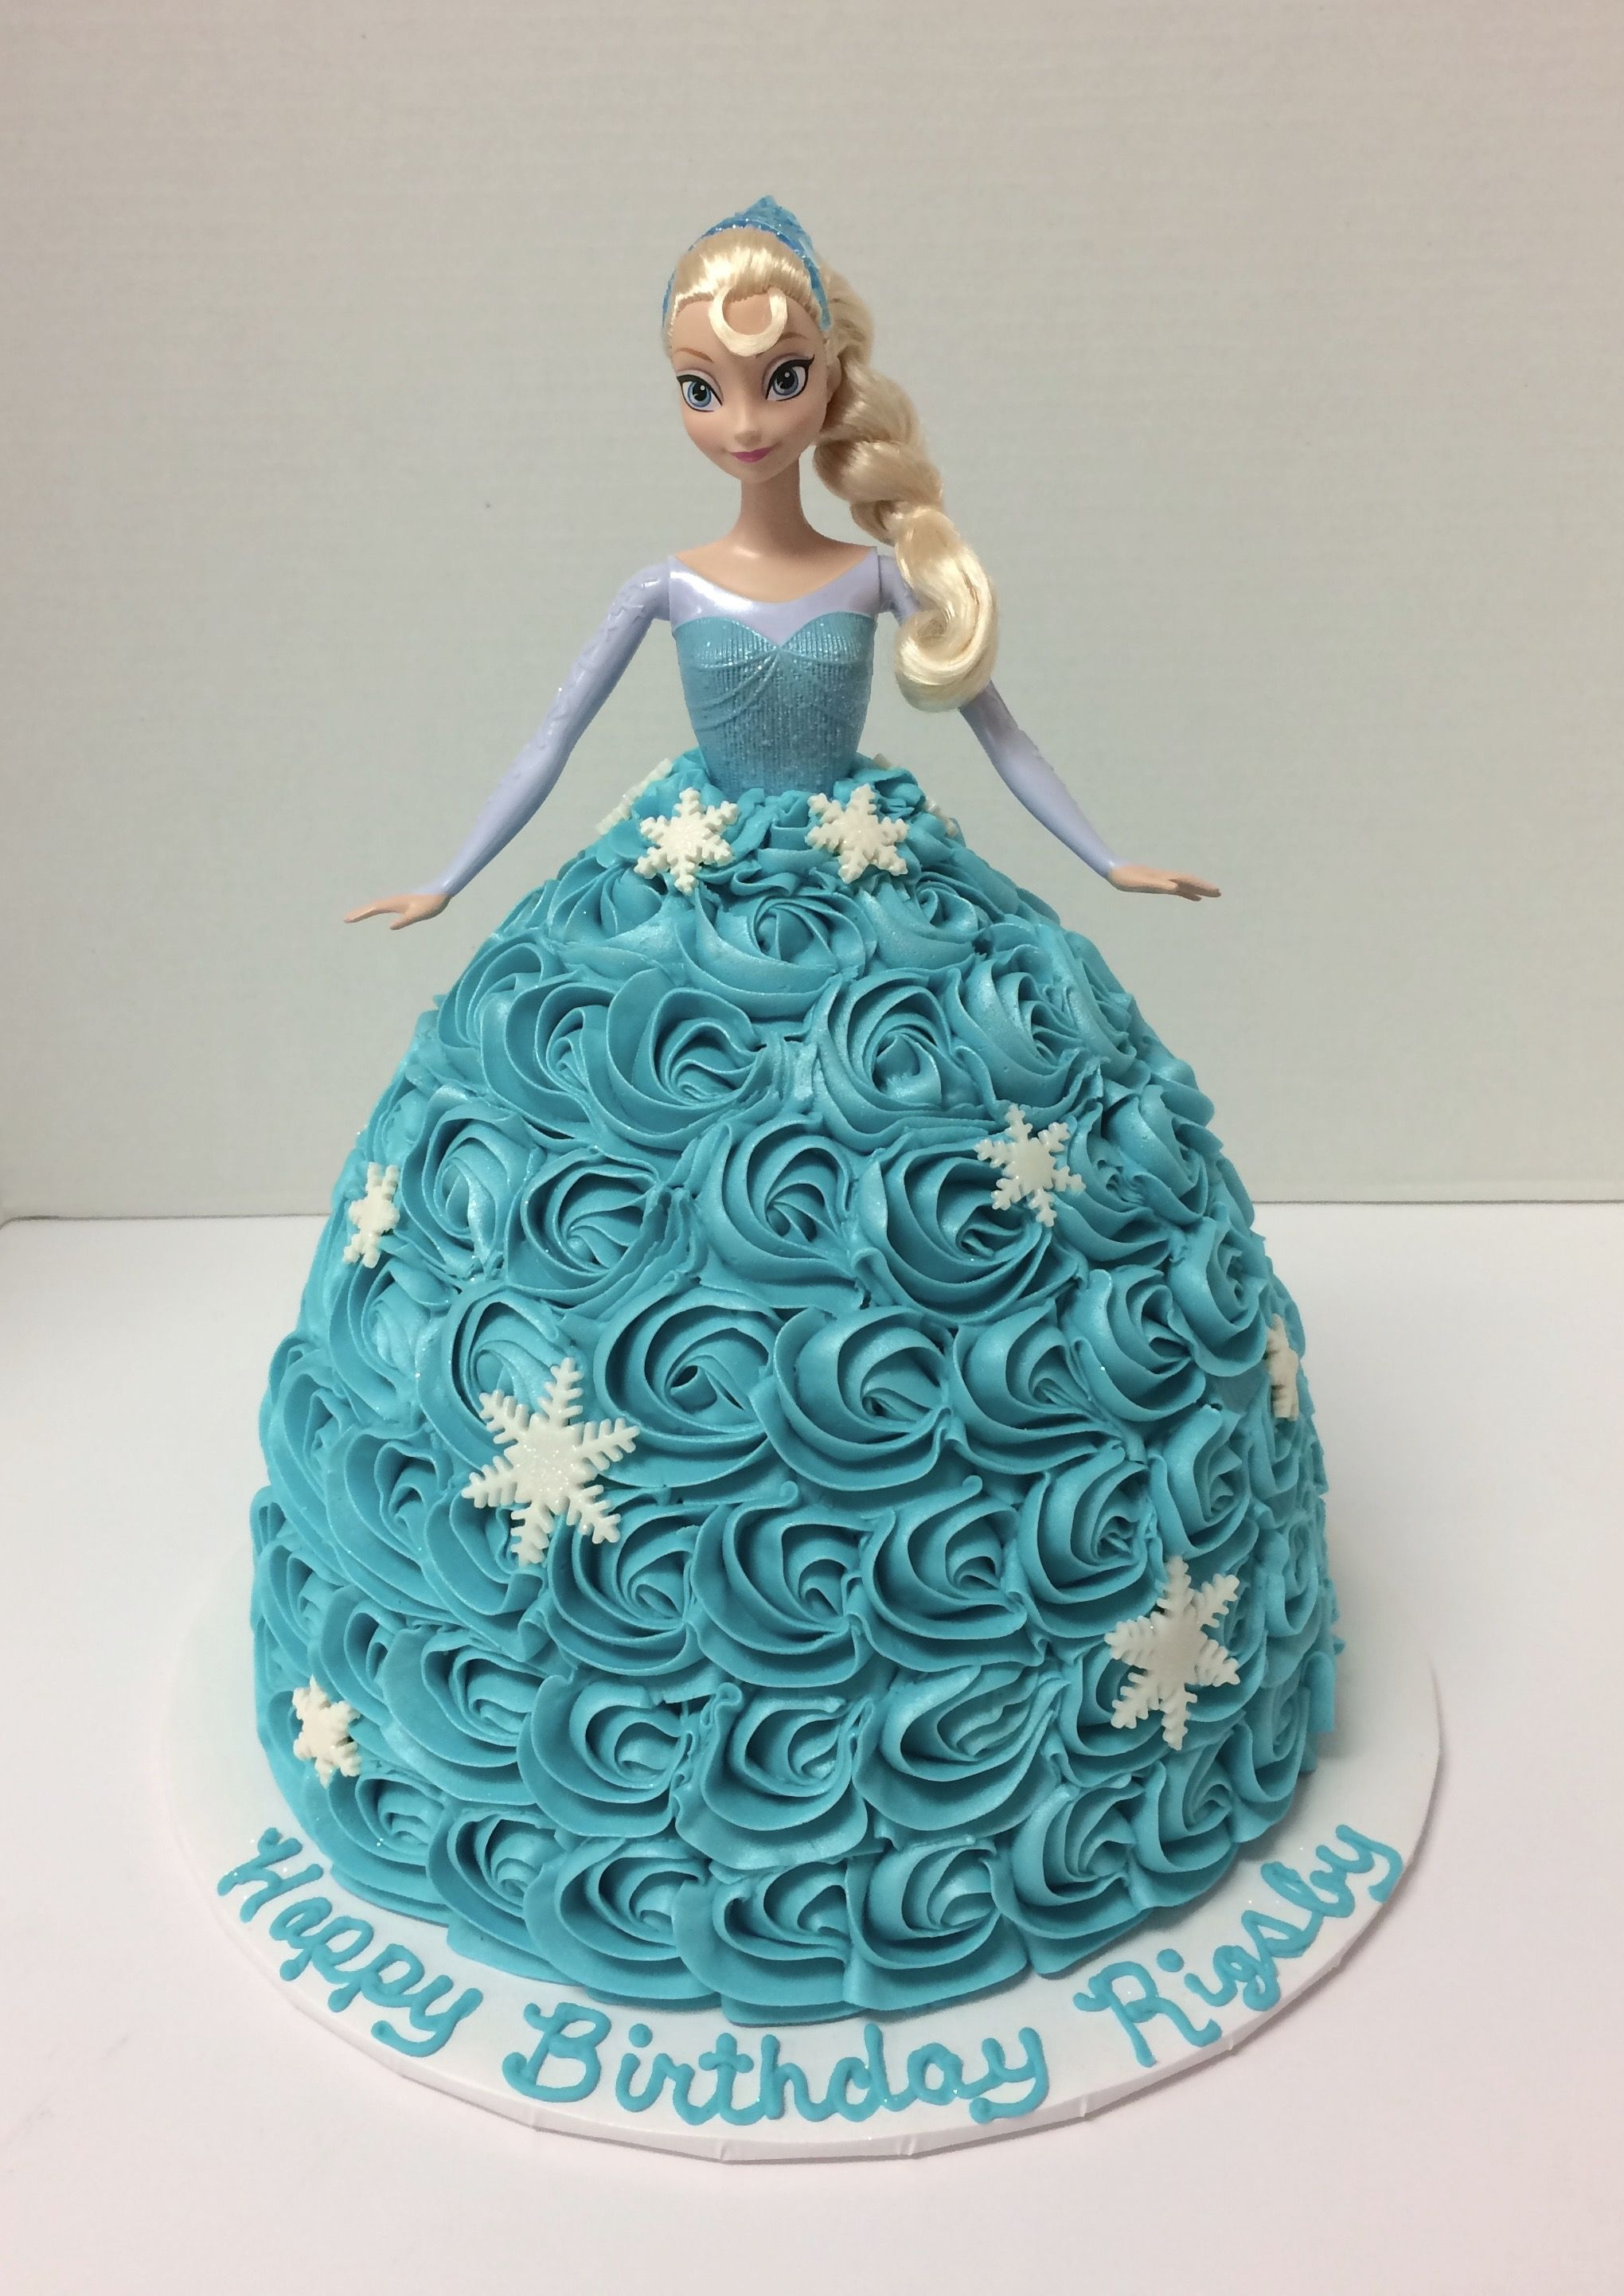 Elsa Doll Cake Baked Goods Sweet Treats Pinterest Elsa doll